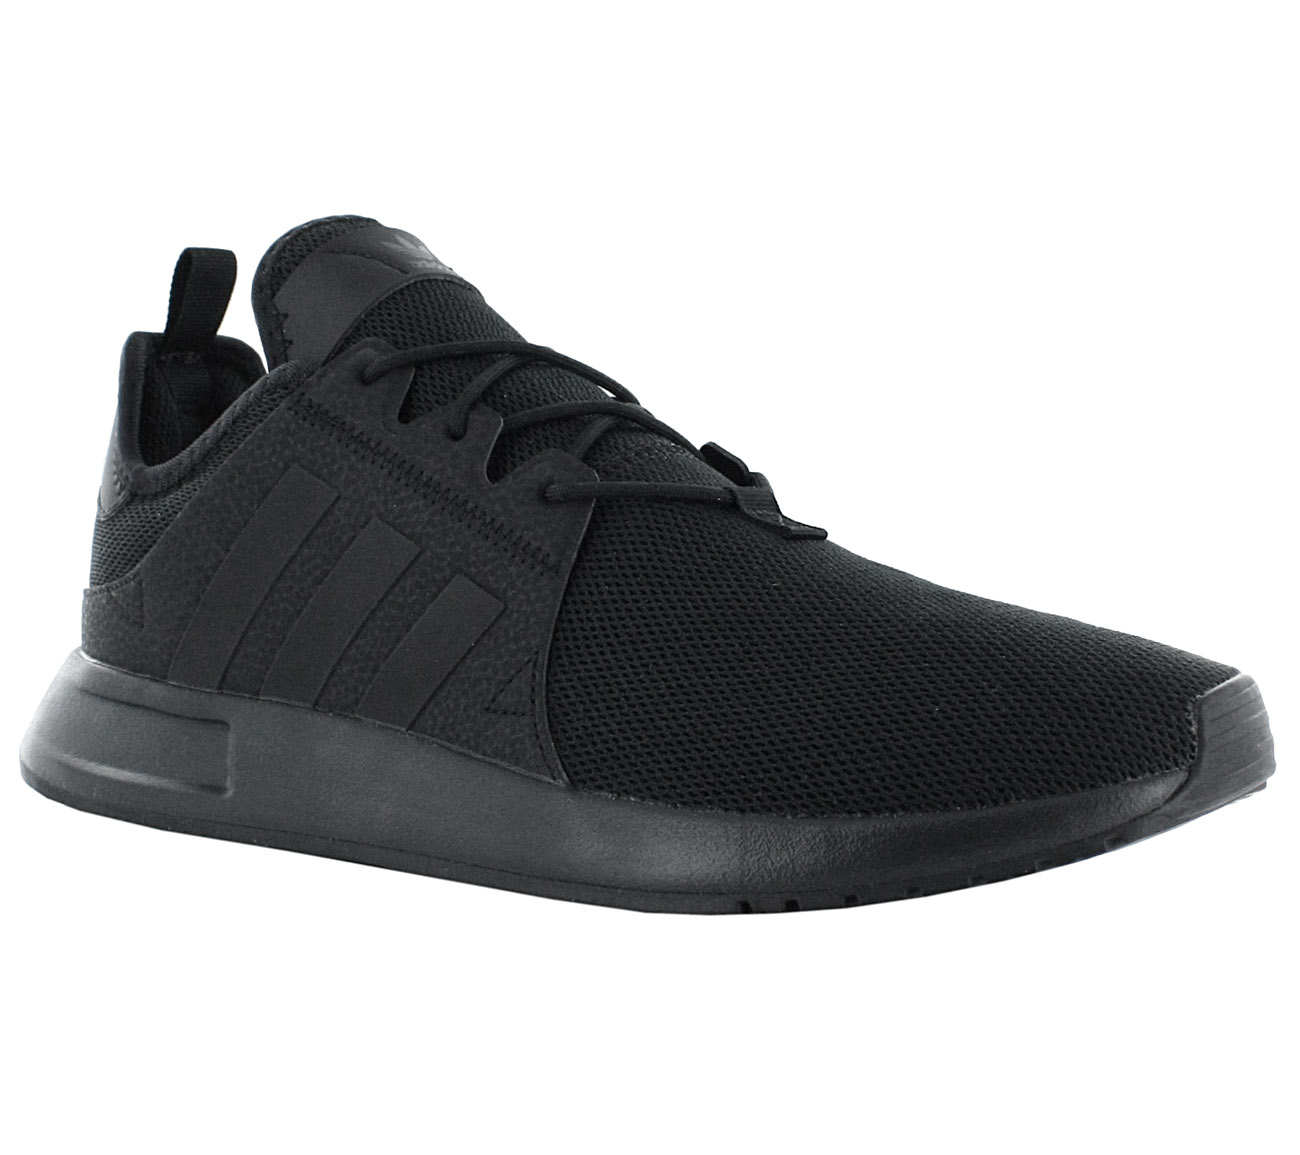 Adidas Men s Sneakers x Plr Shoes Black Sneakers Leisure Fitness ... f9fe2cd61a30c